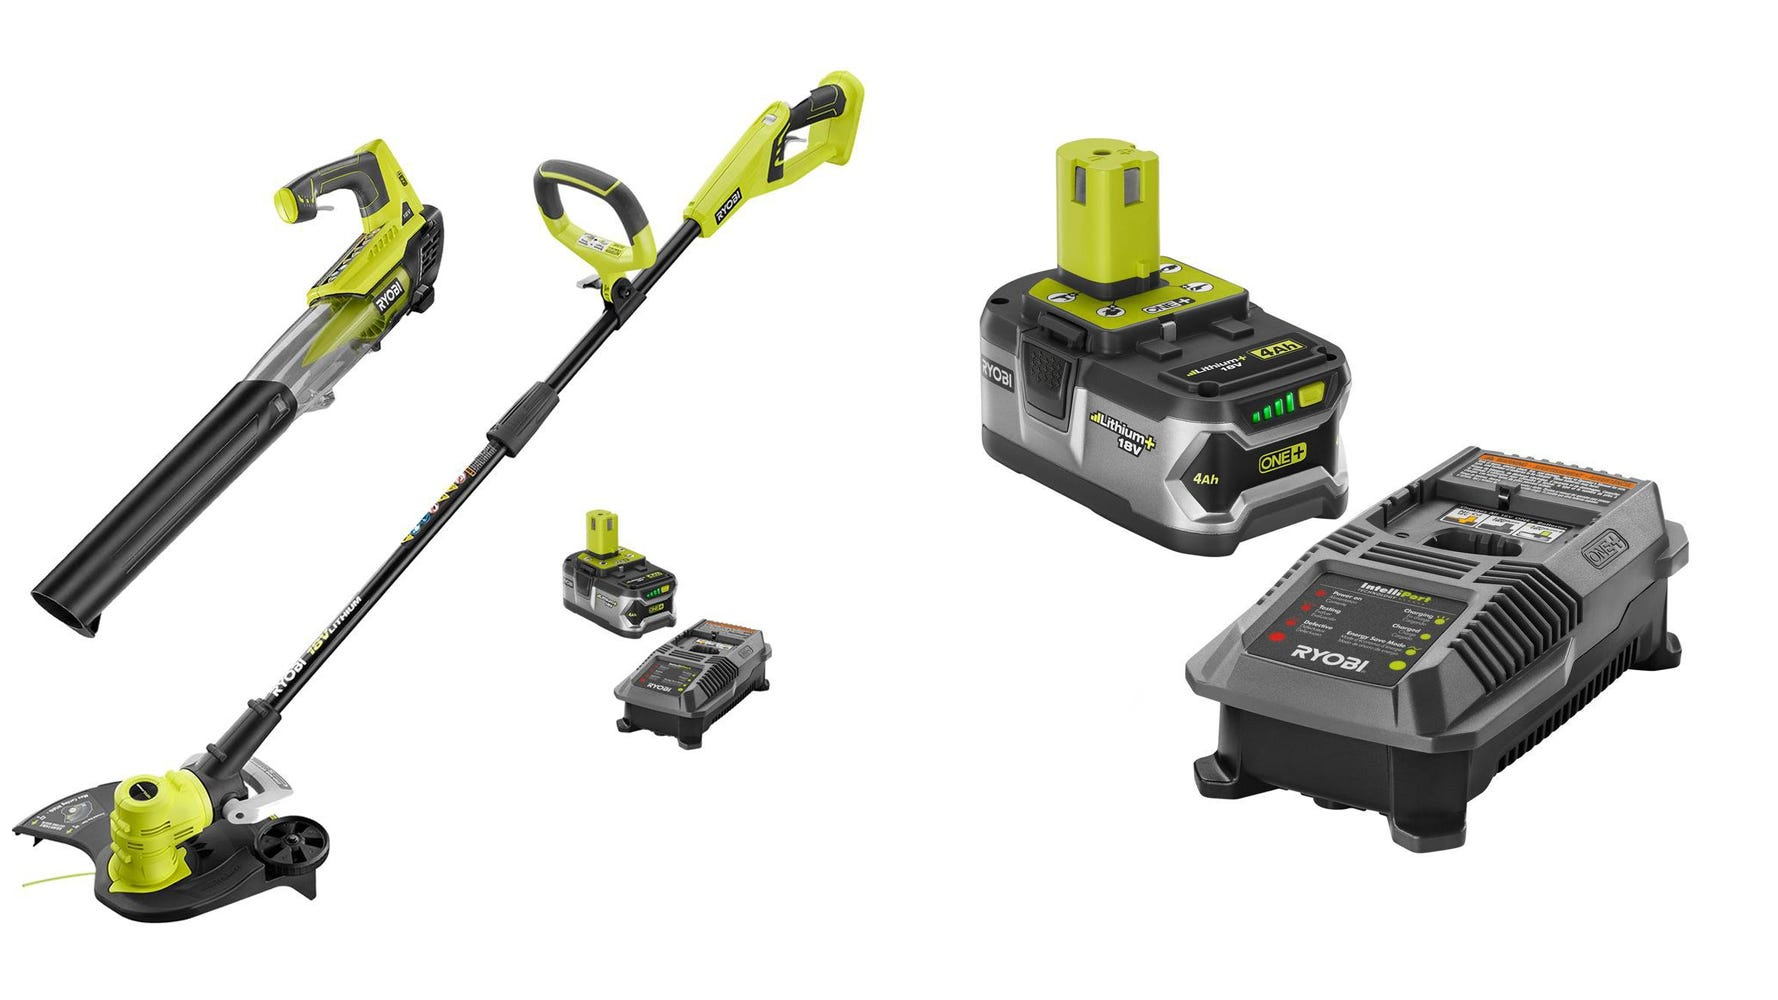 Yard work made easy thanks to RYOBI.